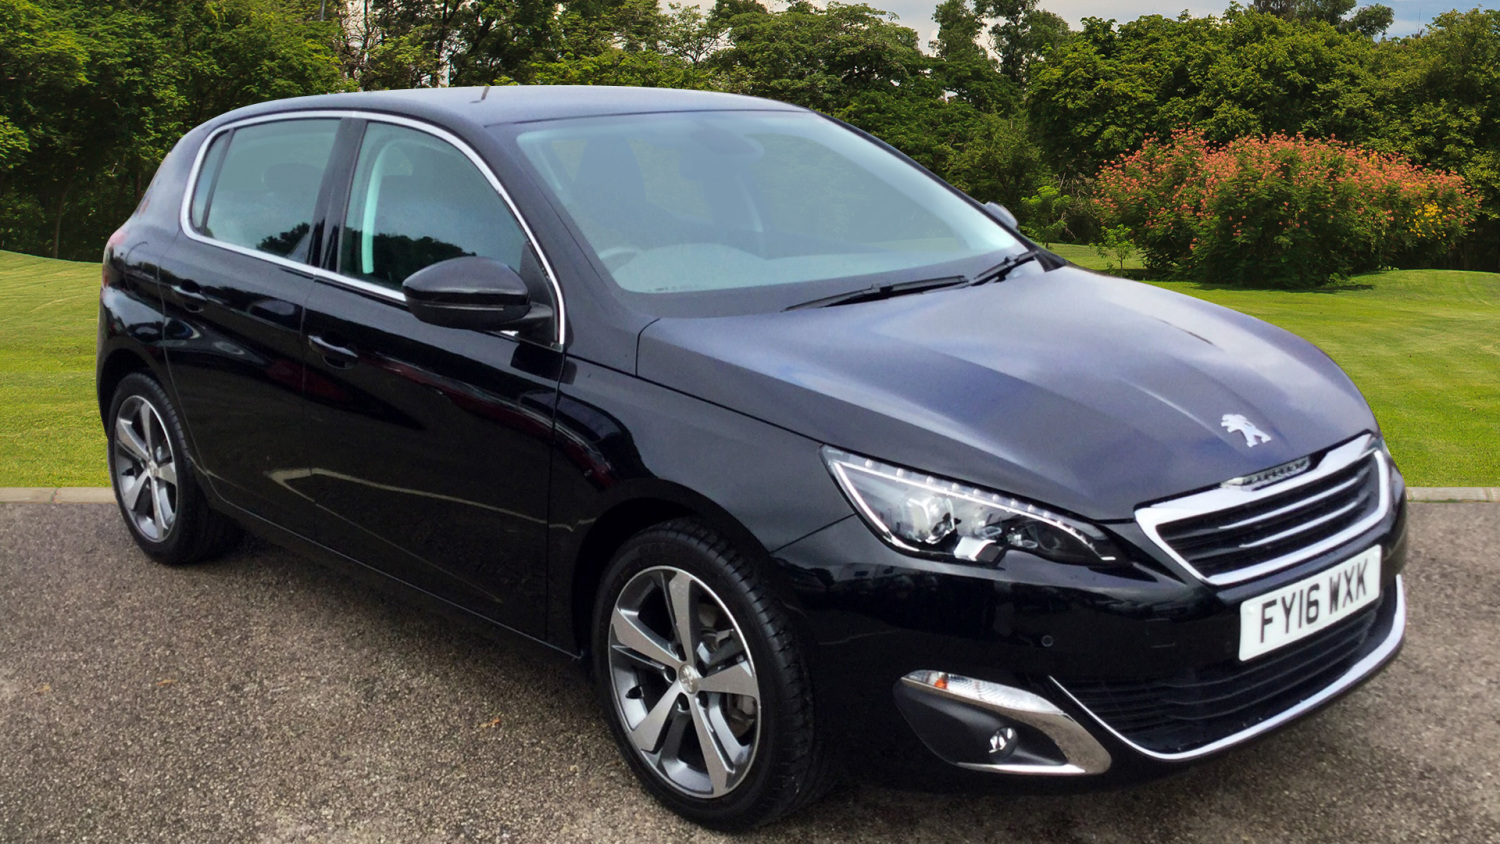 used peugeot 308 1 2 puretech 130 allure 5dr eat6 petrol hatchback for sale vertu volkswagen. Black Bedroom Furniture Sets. Home Design Ideas